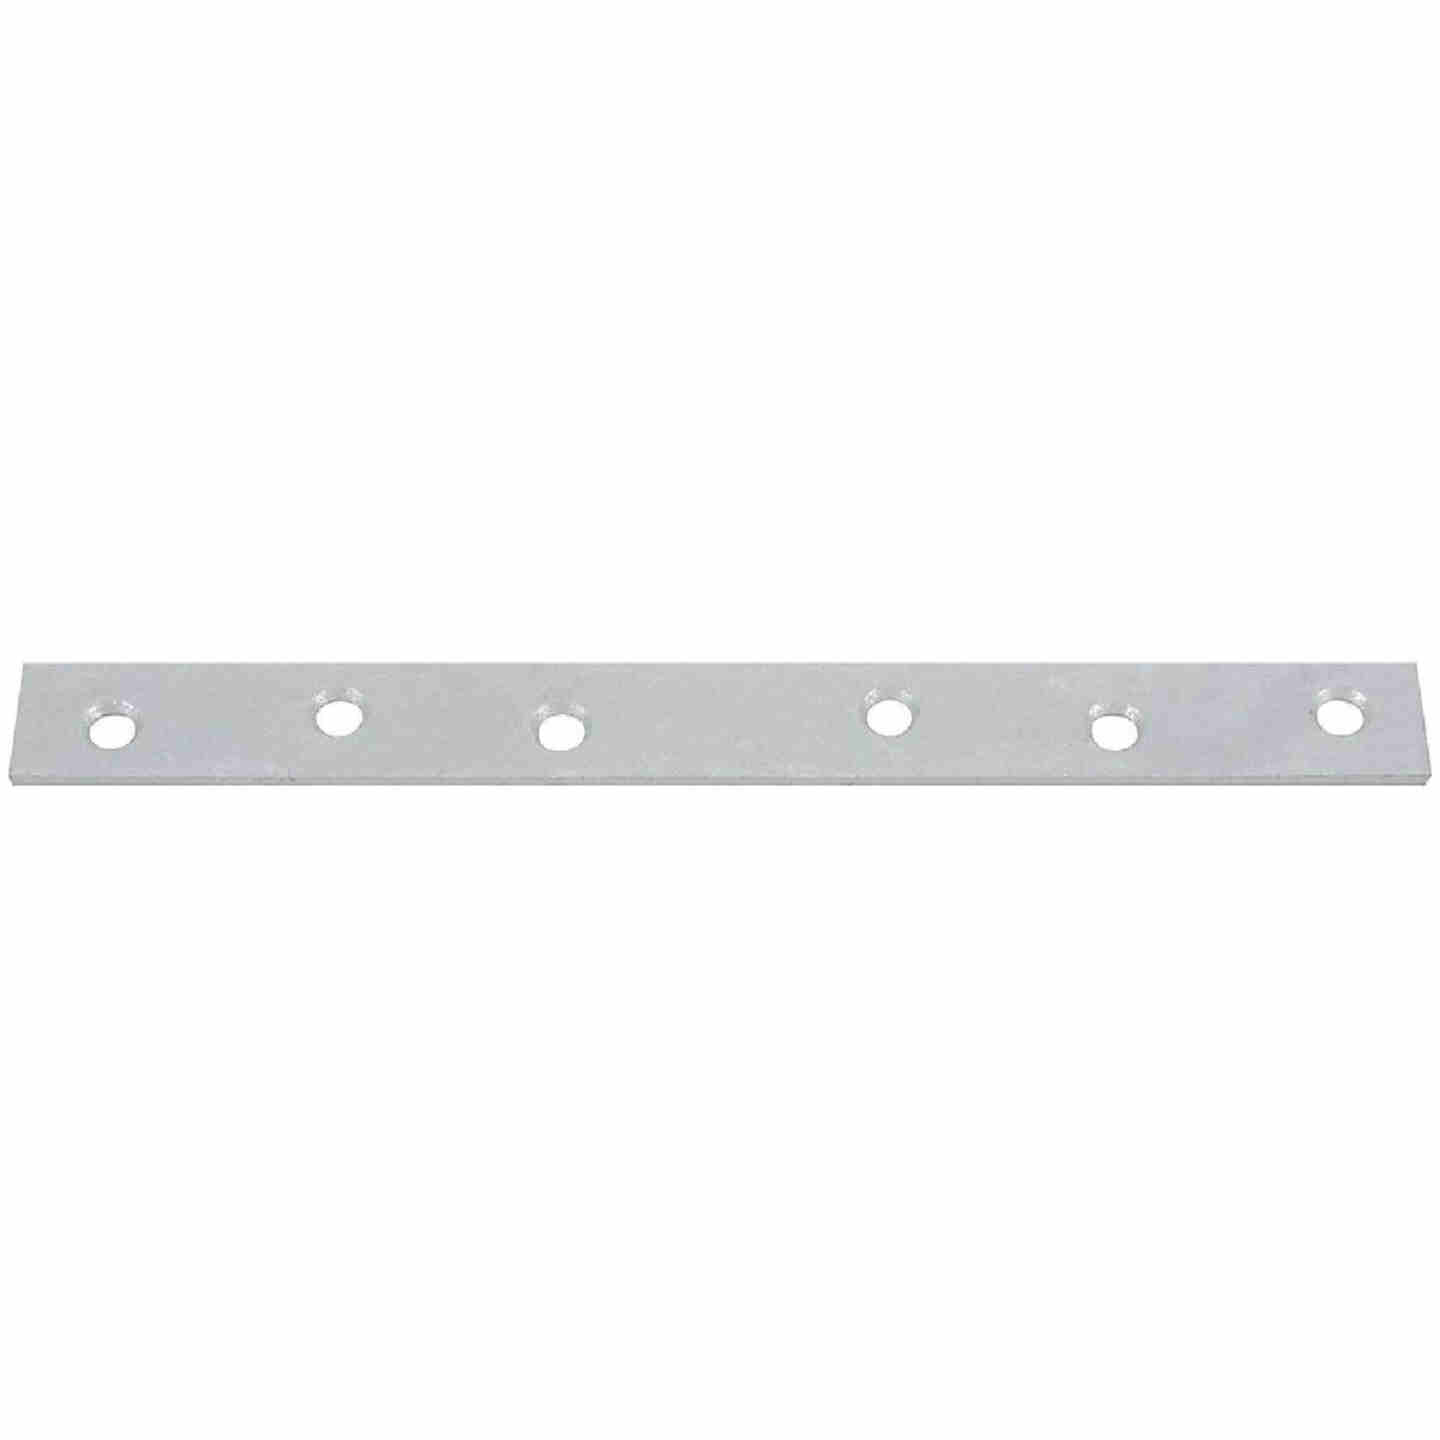 National Catalog 118 10 In. x 1 In. Galvanized Steel Mending Brace Image 1